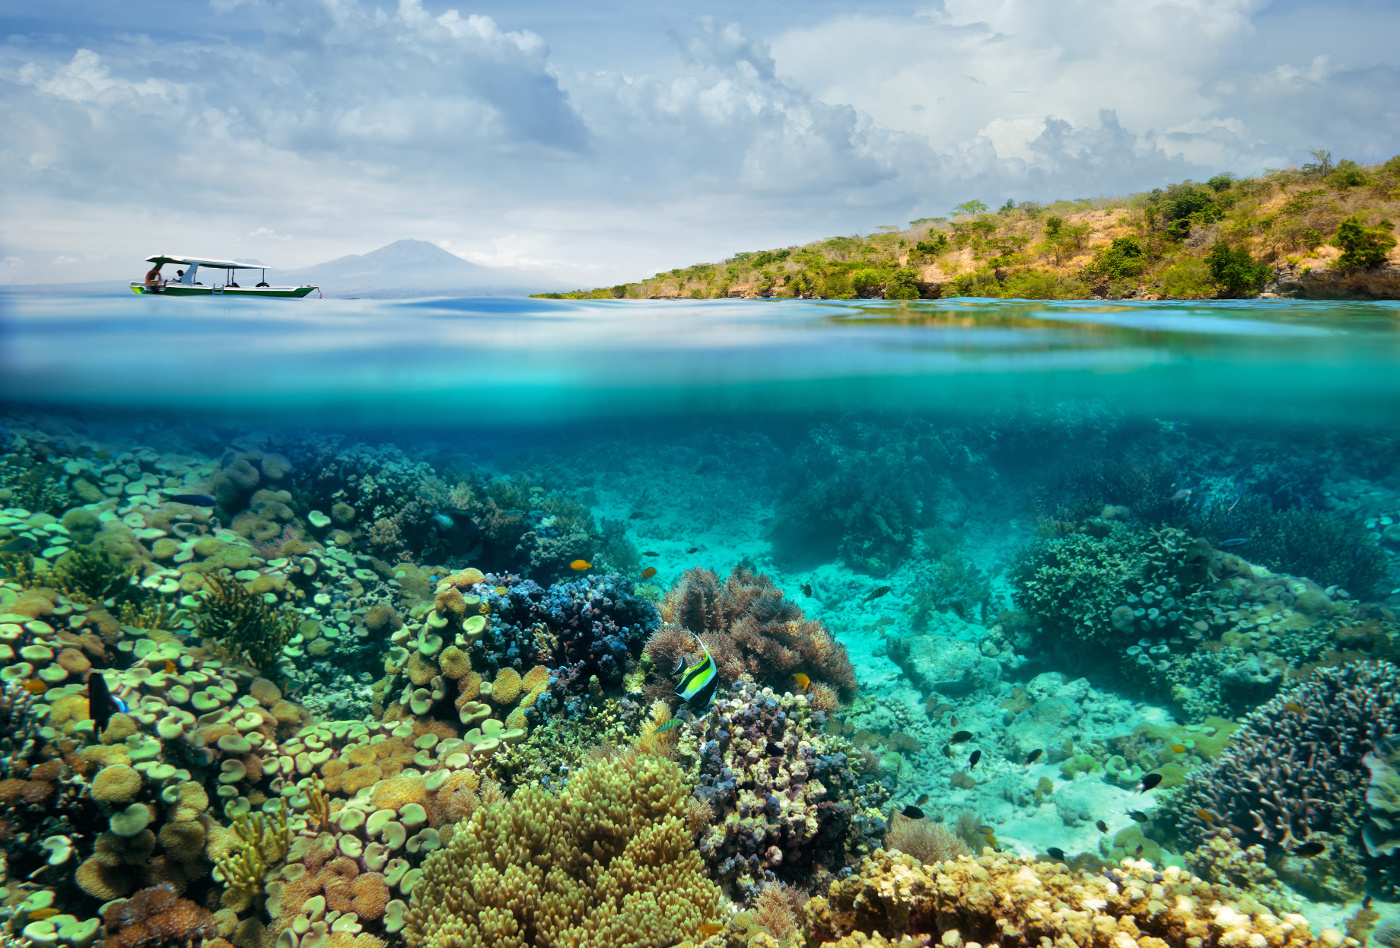 Beautiful Coral reef on background of cloudy sky and volcano.